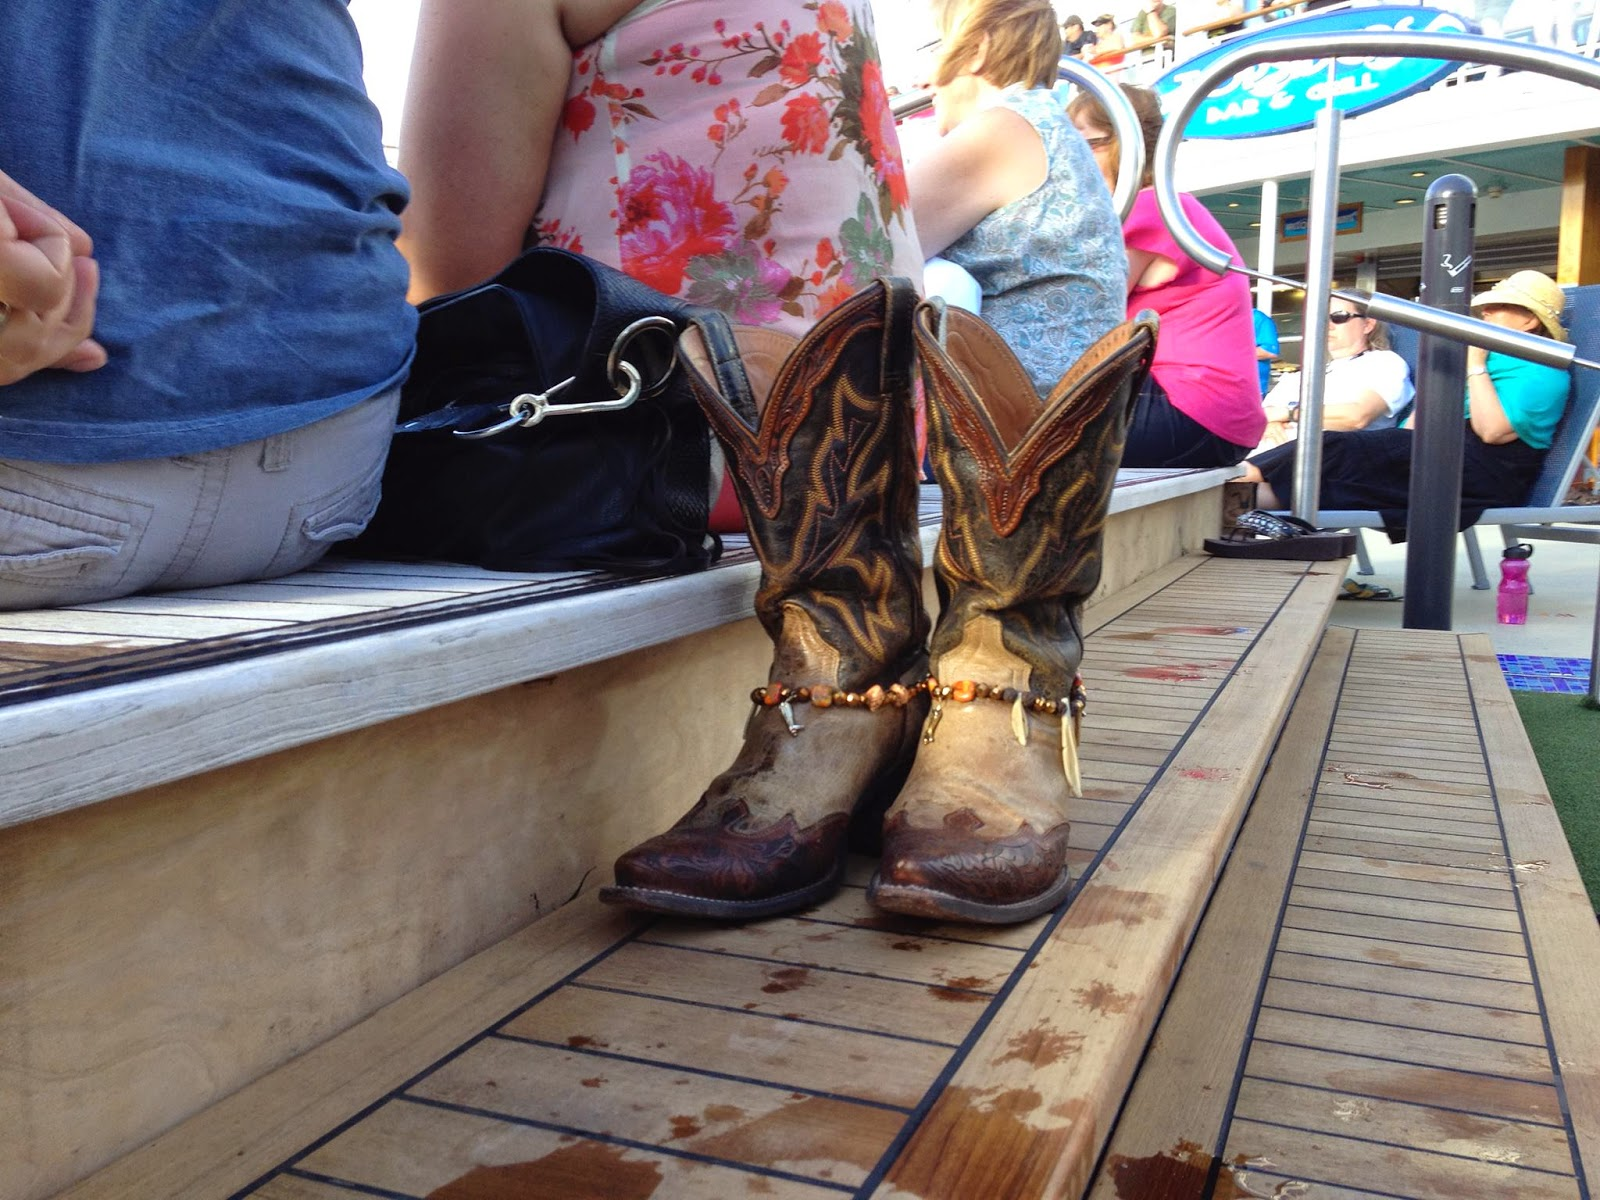 Country Music Cruise 2015 | Cowboy Boots Poolside on the Norwegian Cruise Line